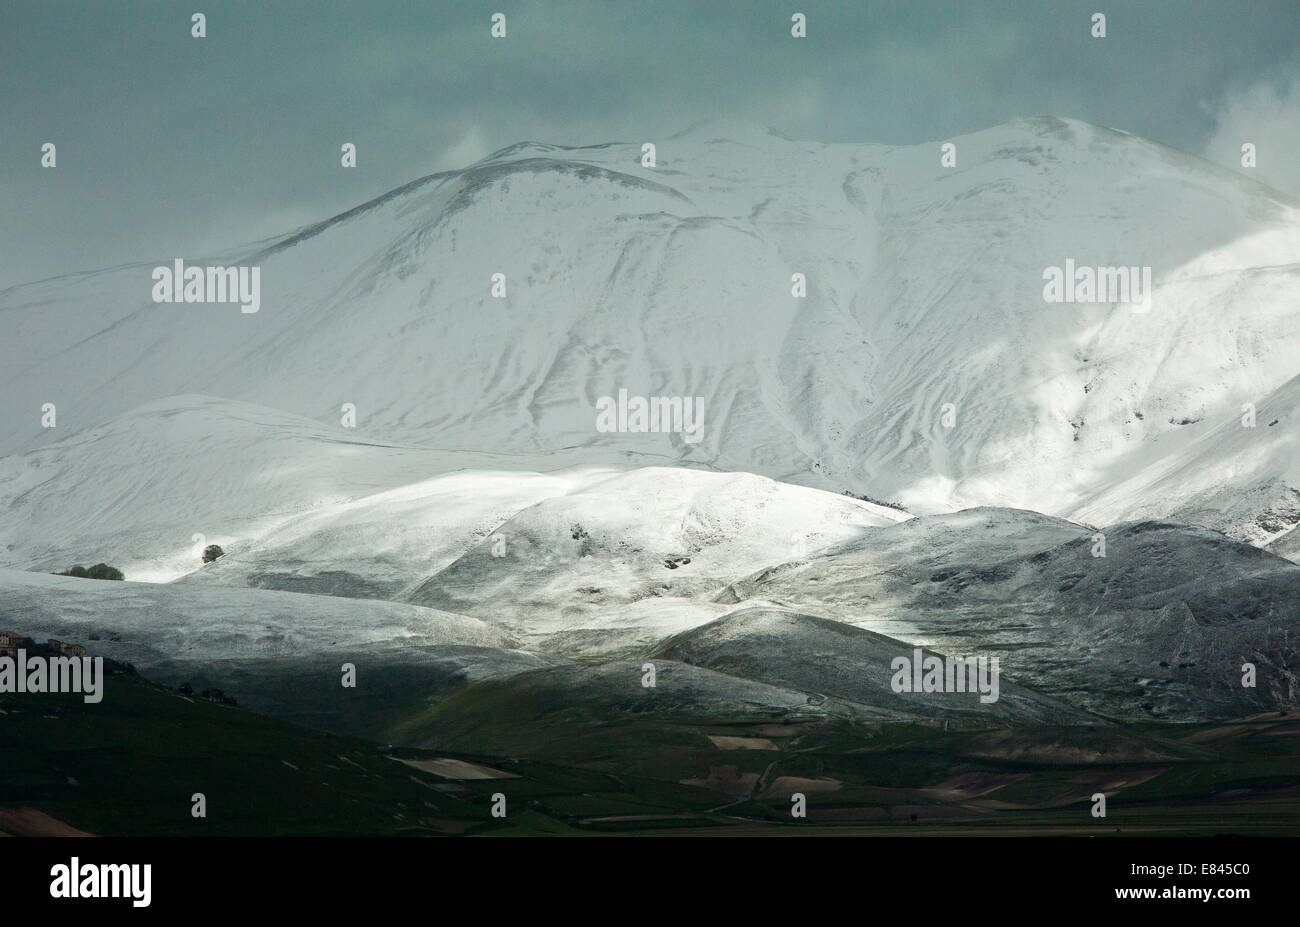 The snowy slopes of Monte Vettore in Monti Sibillini National Park, Italy. - Stock Image